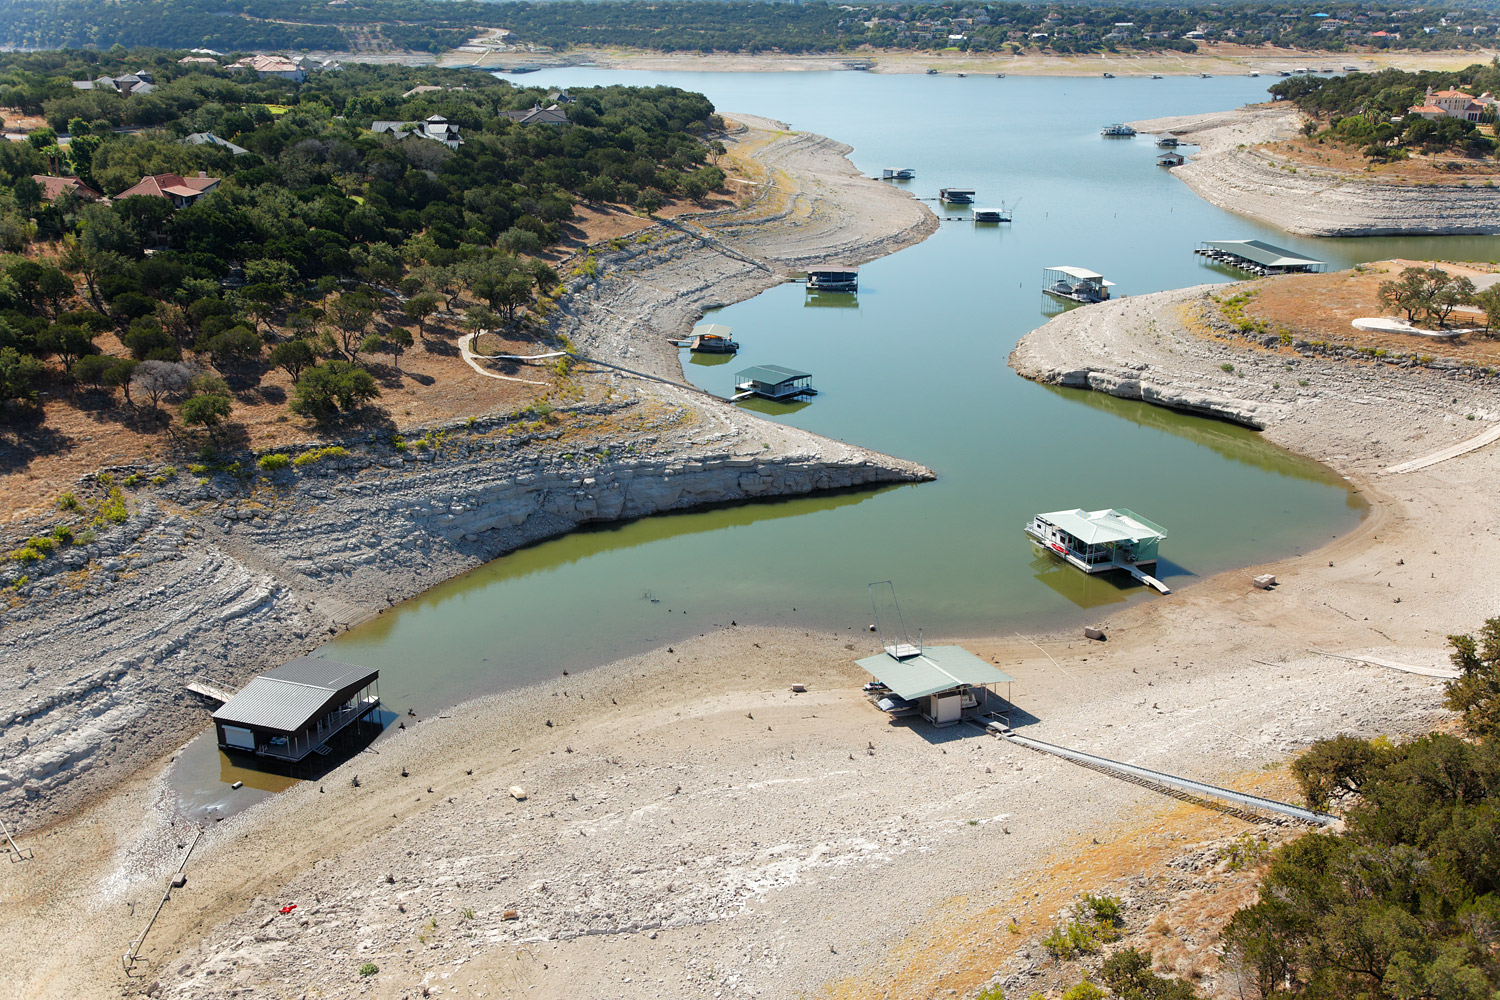 In Texas, stranded boat docks sit on a dried-up creek feeding Lake Travis, which is over 26 feet below its normal level.